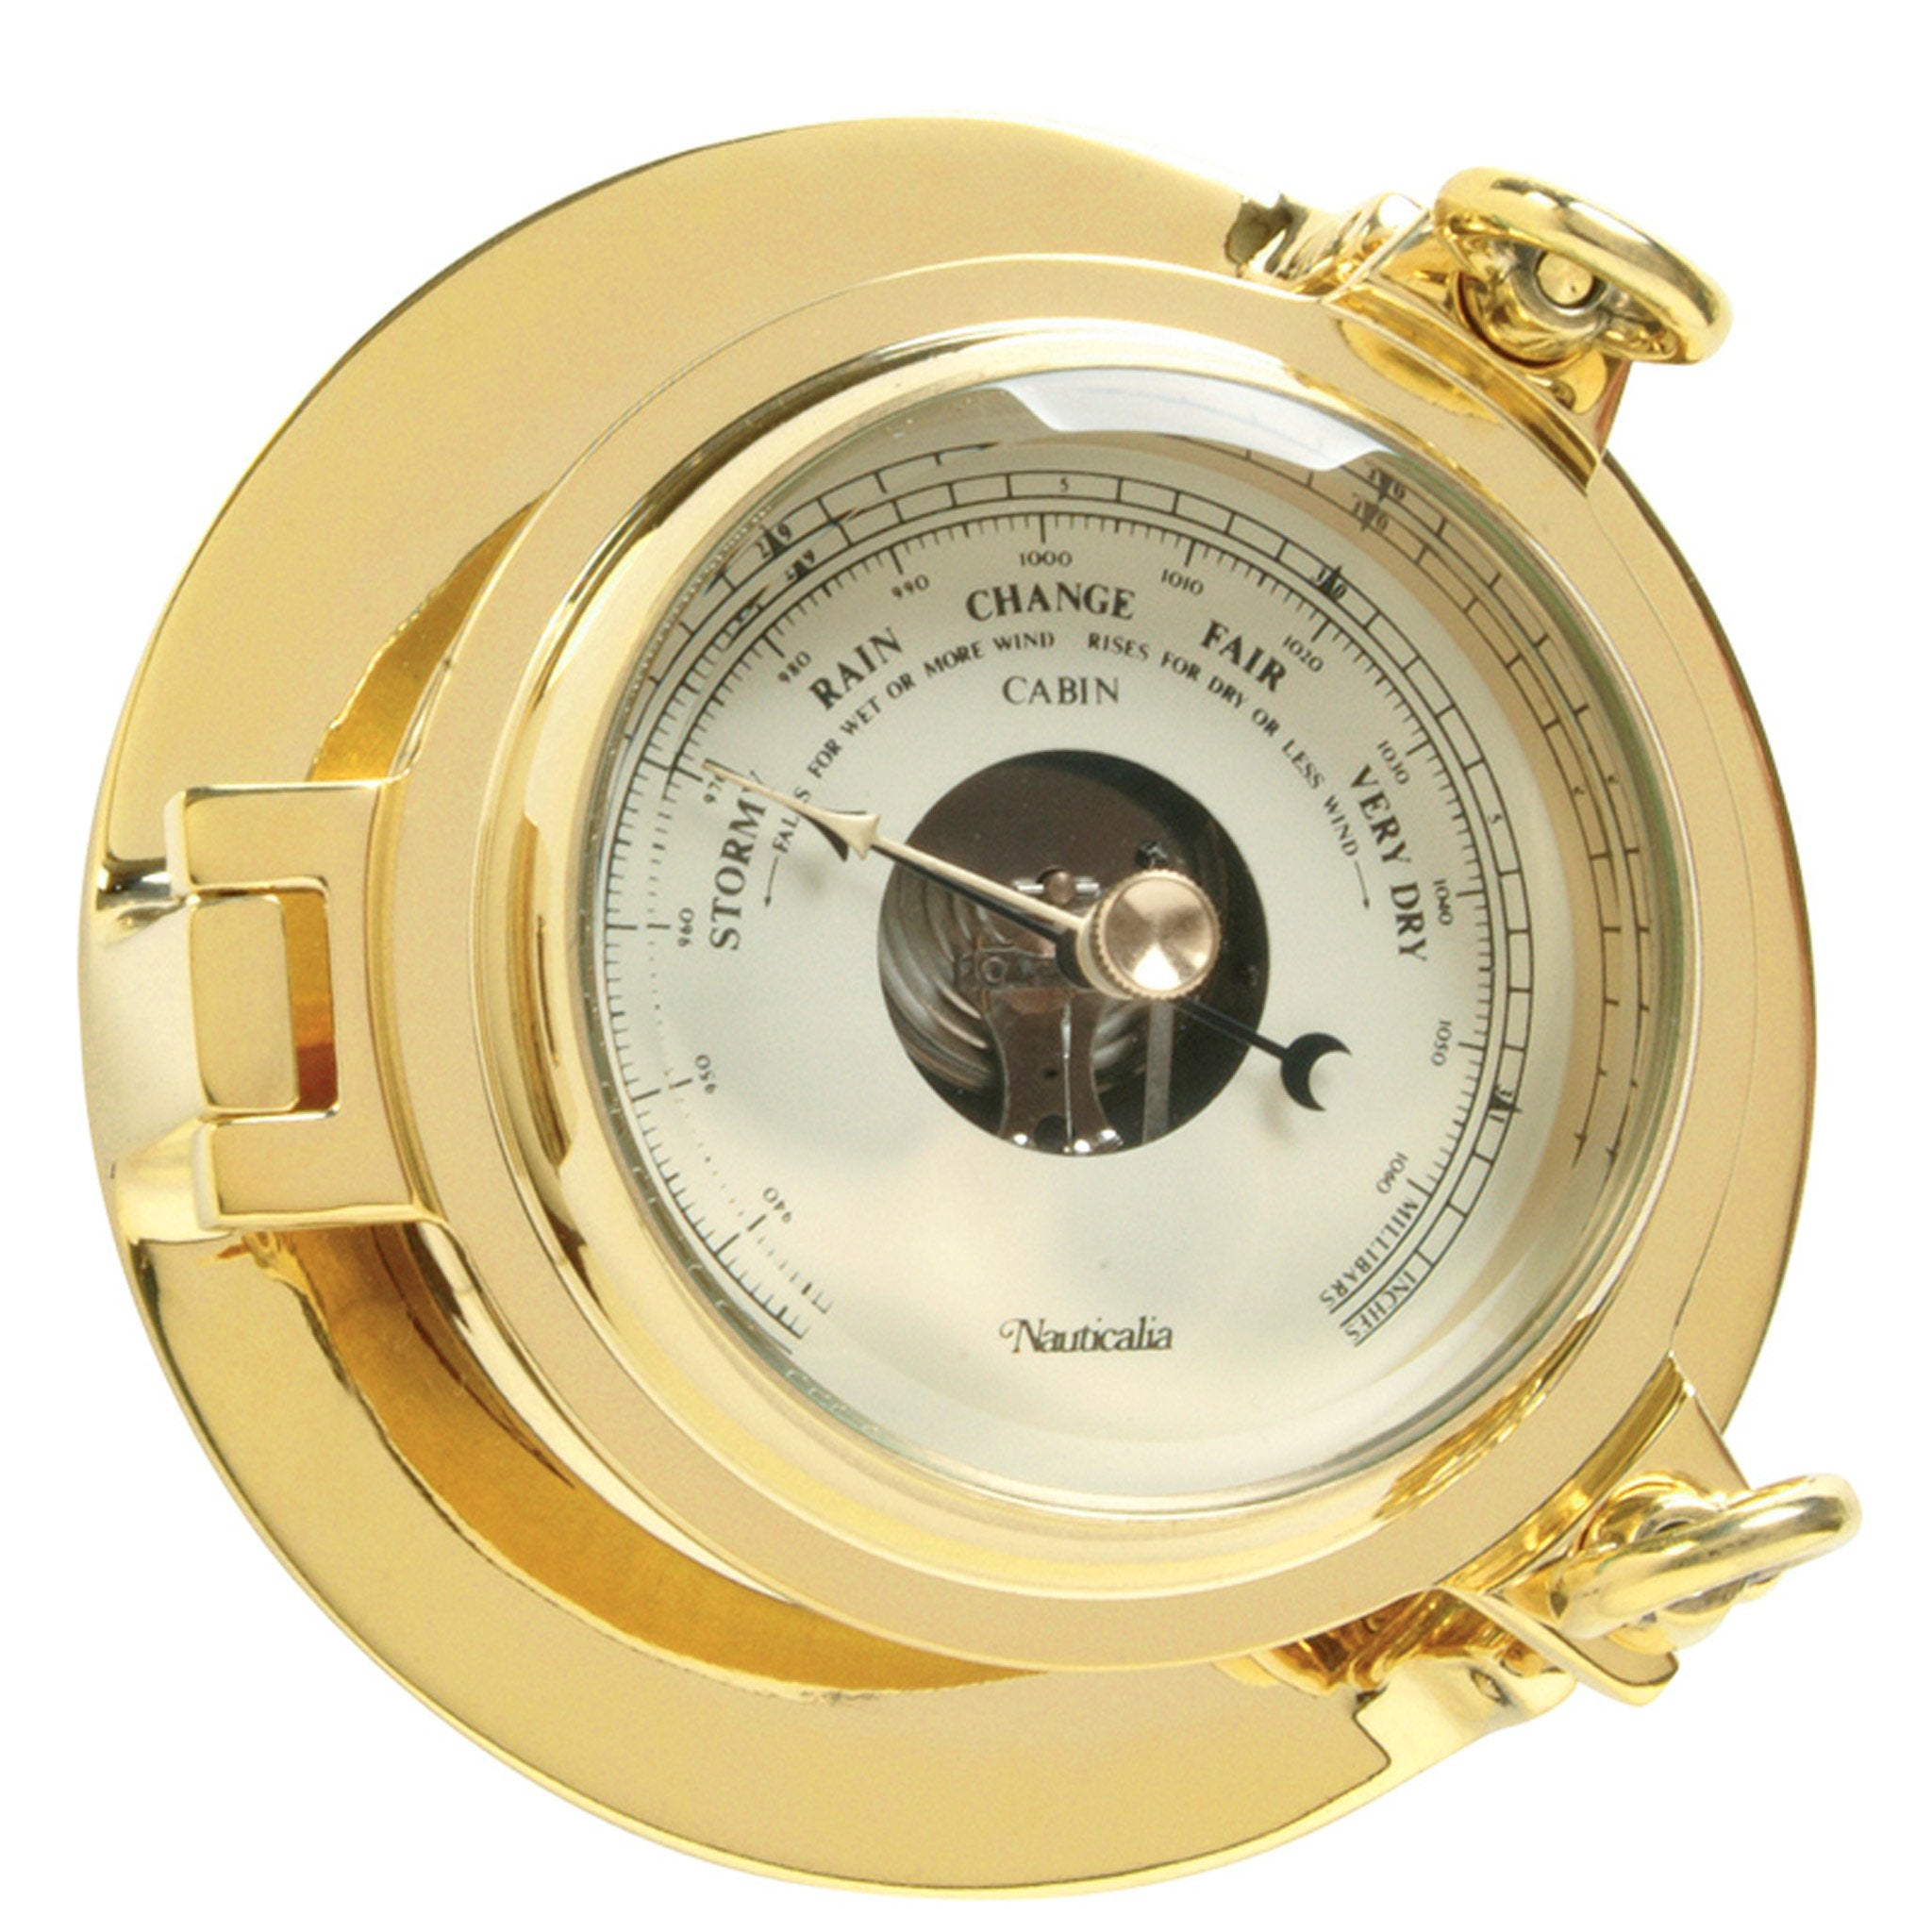 Nautical Cabin Barometer 140 mm - Arthur Beale